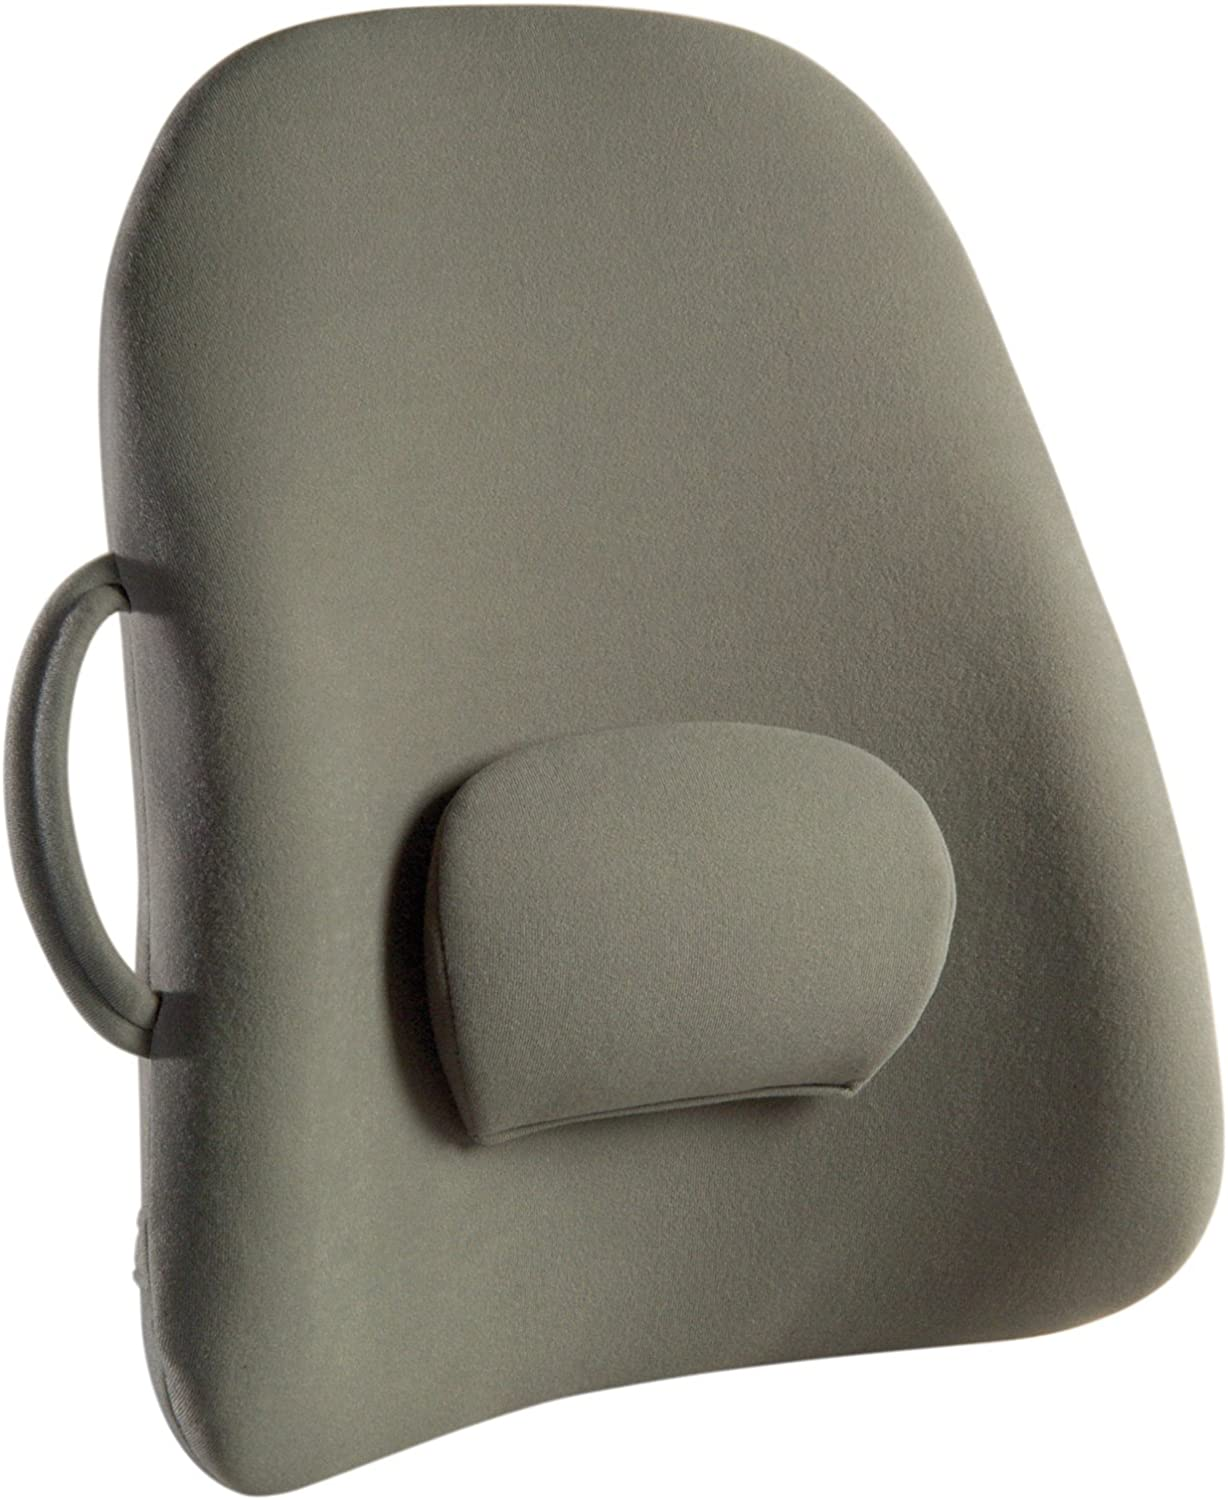 B000FJQYQU ObusForme Grey Lowback Backrest Support, Removable Adjustable Lumbar Support, Contoured Cushioning Provides Supportive Comfort, Handle For Portability, Hypoallergenic Cover Can Be Removed To Wash 81dHFSHEwqL